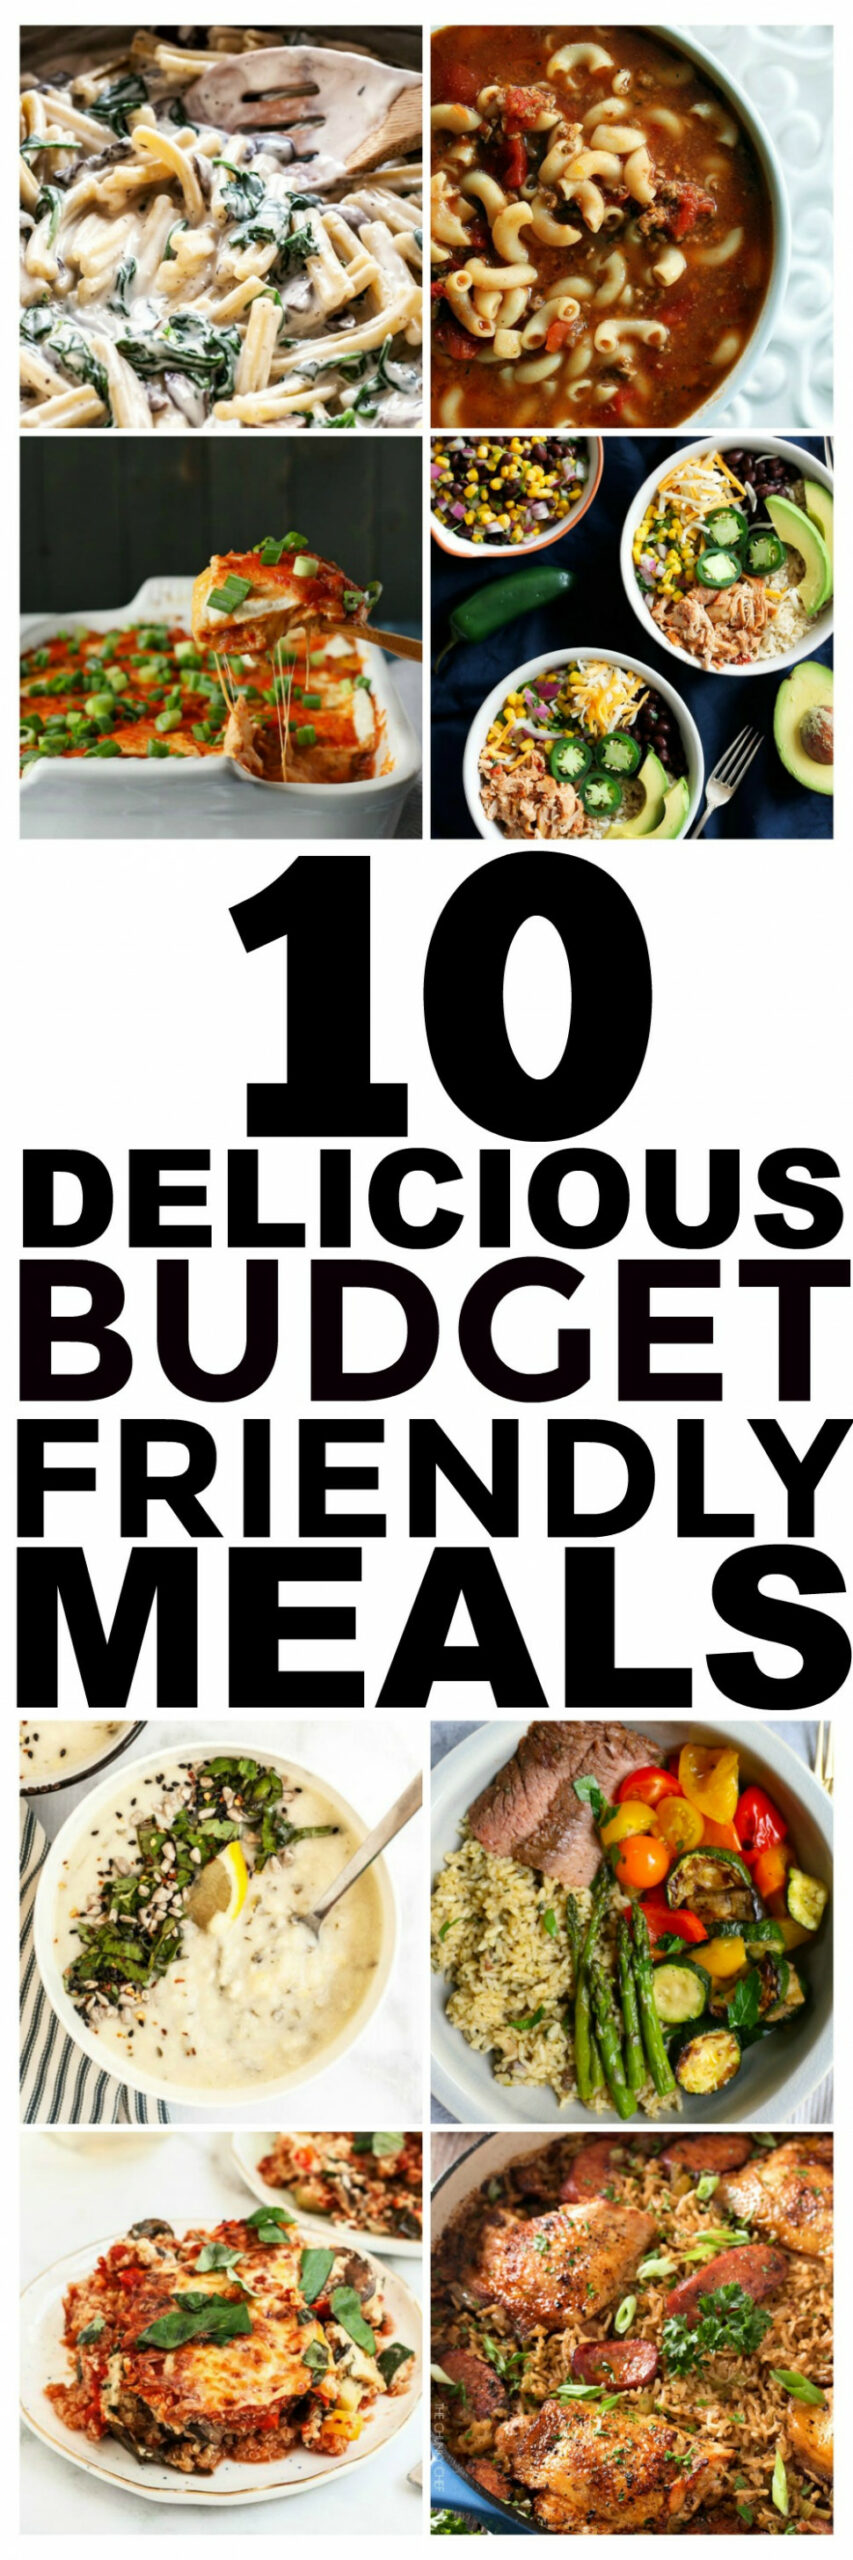 15 Budget Recipes and Cheap Easy Meals You Should Try - recipes healthy budget dinner